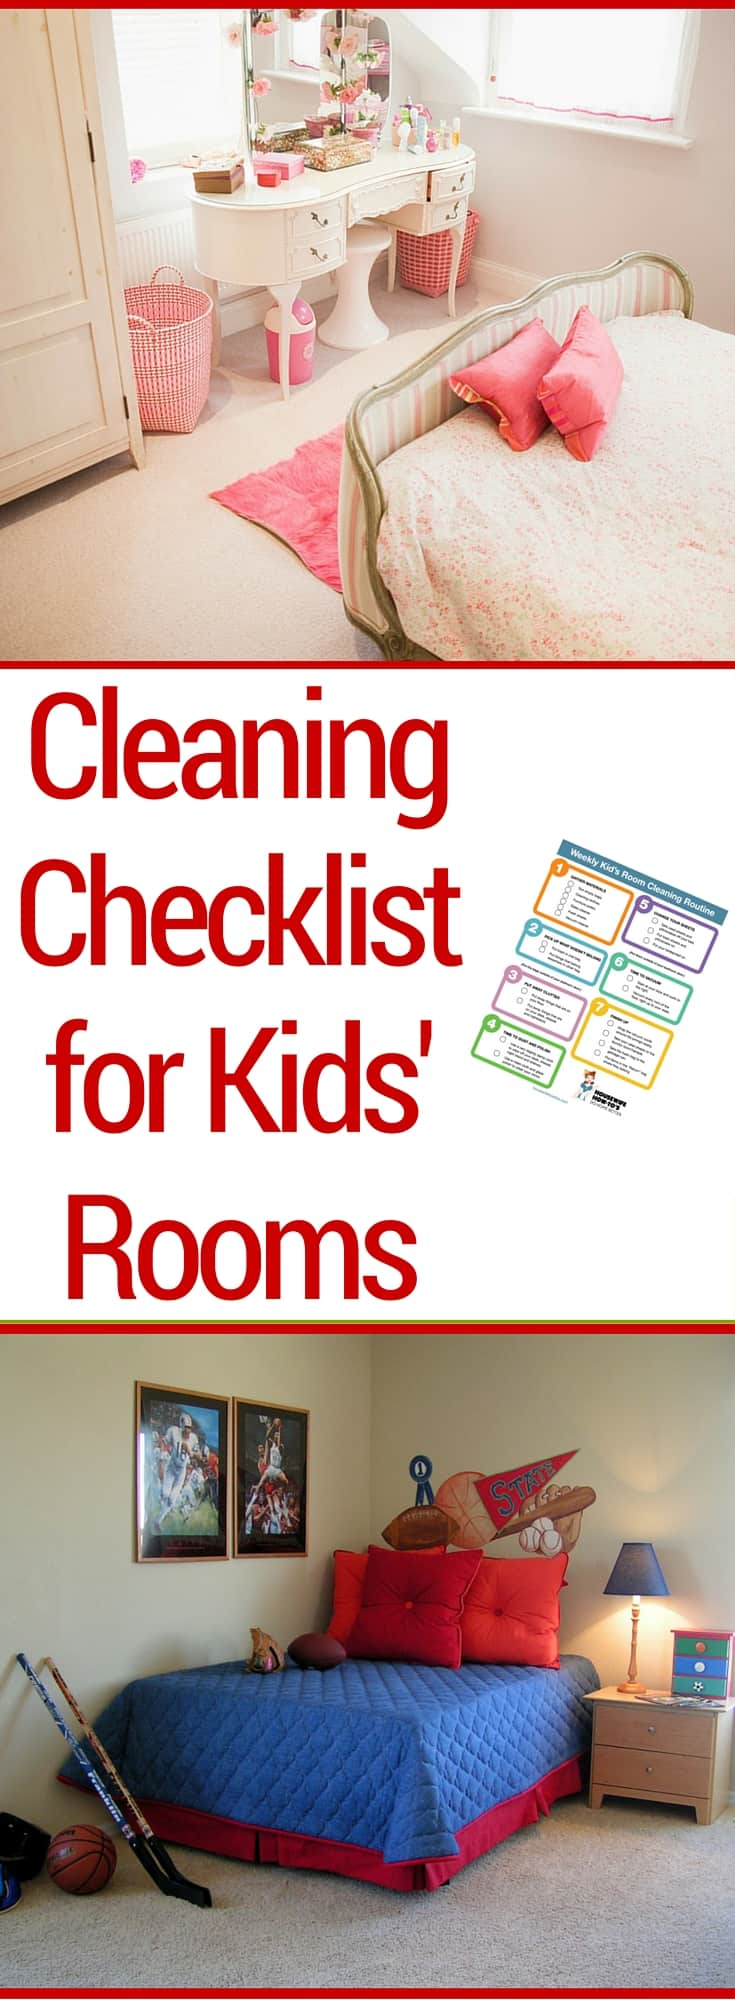 Cleaning Checklist for Kids Rooms: Free Printable